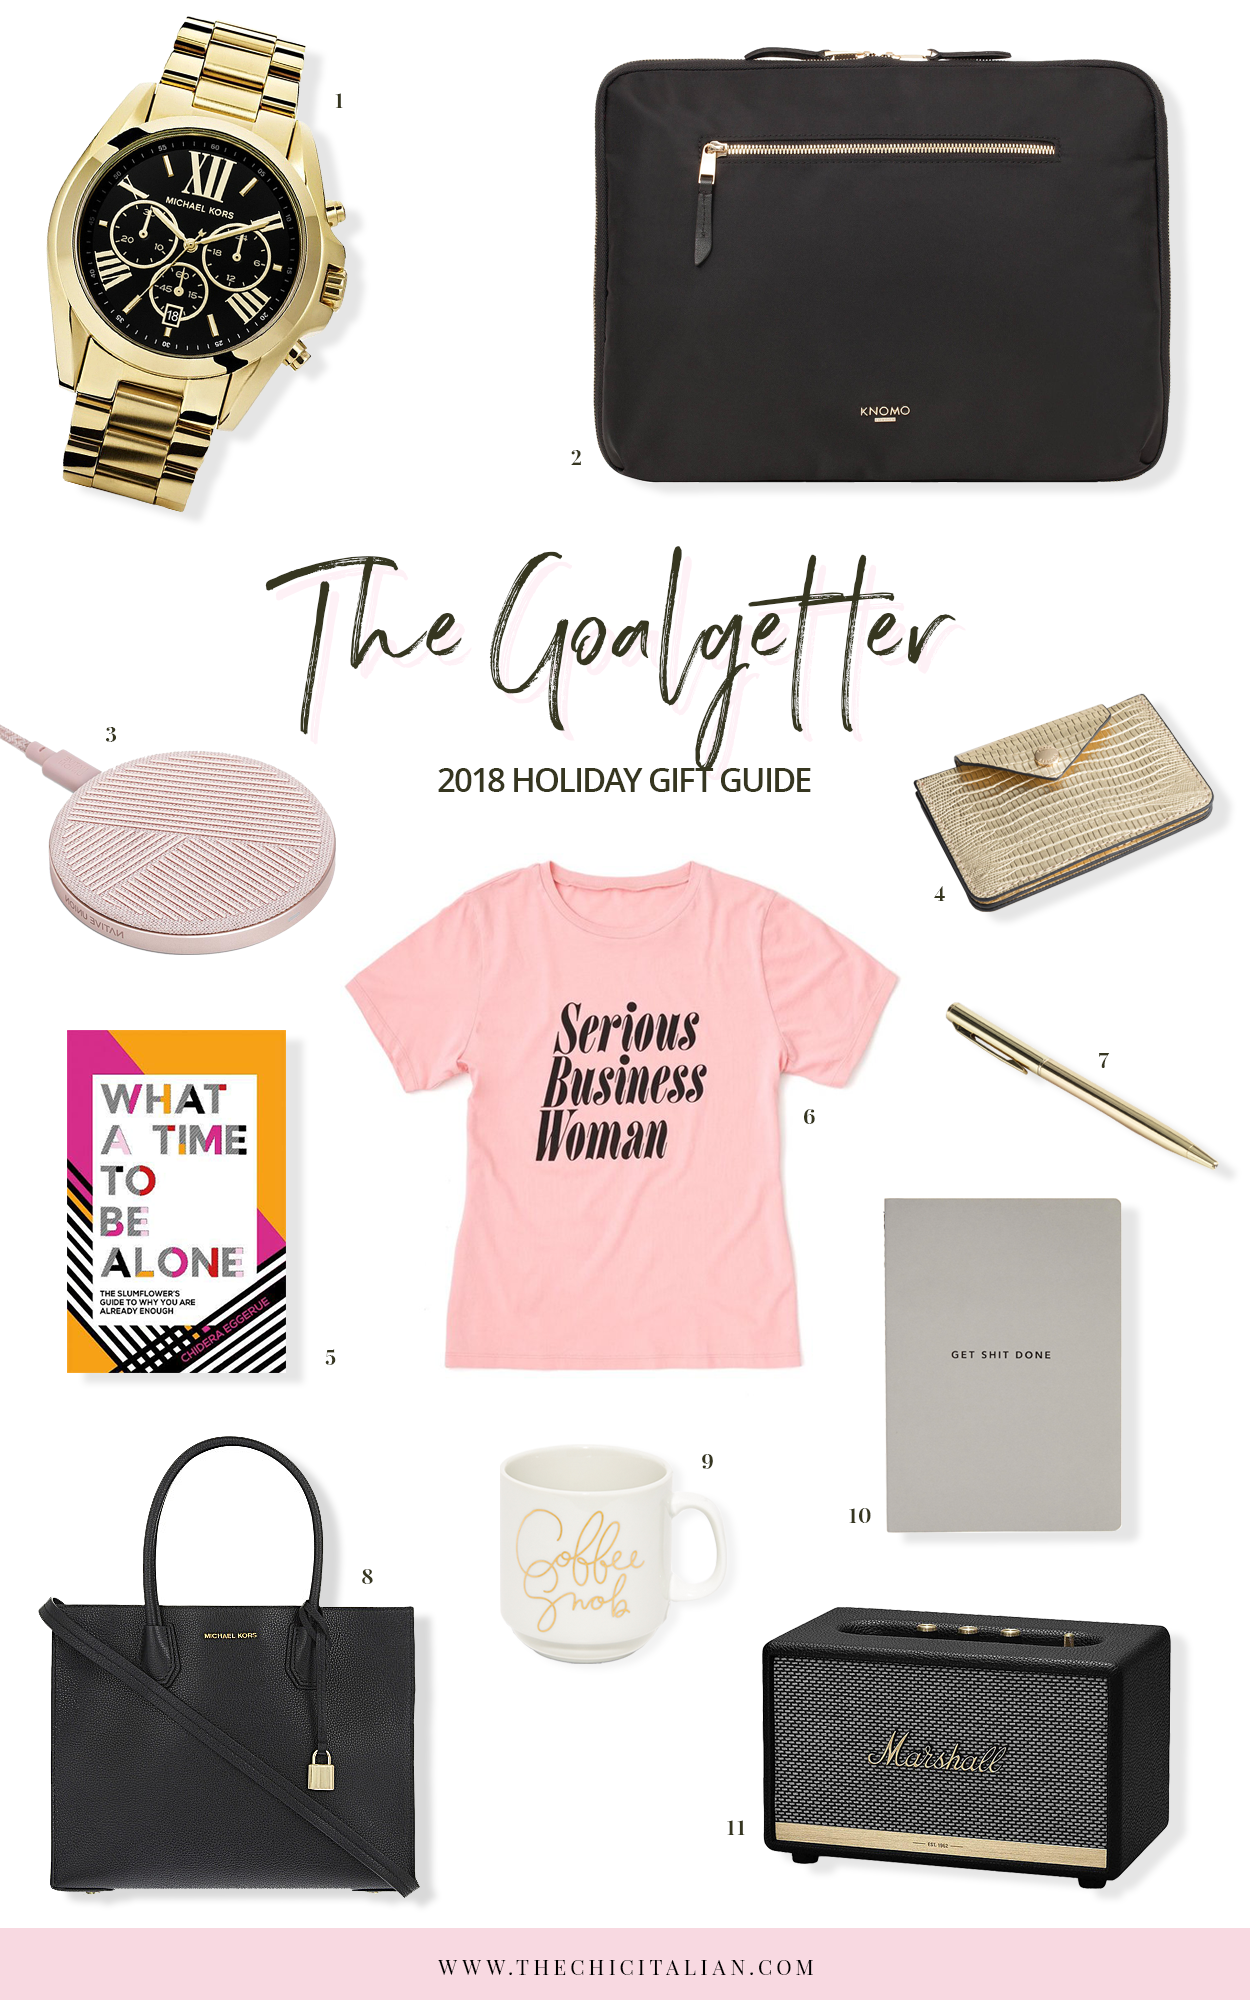 HOLIDAY GIFT GUIDE 2018 | THECHICITALIAN | The gift guides for the women in your life